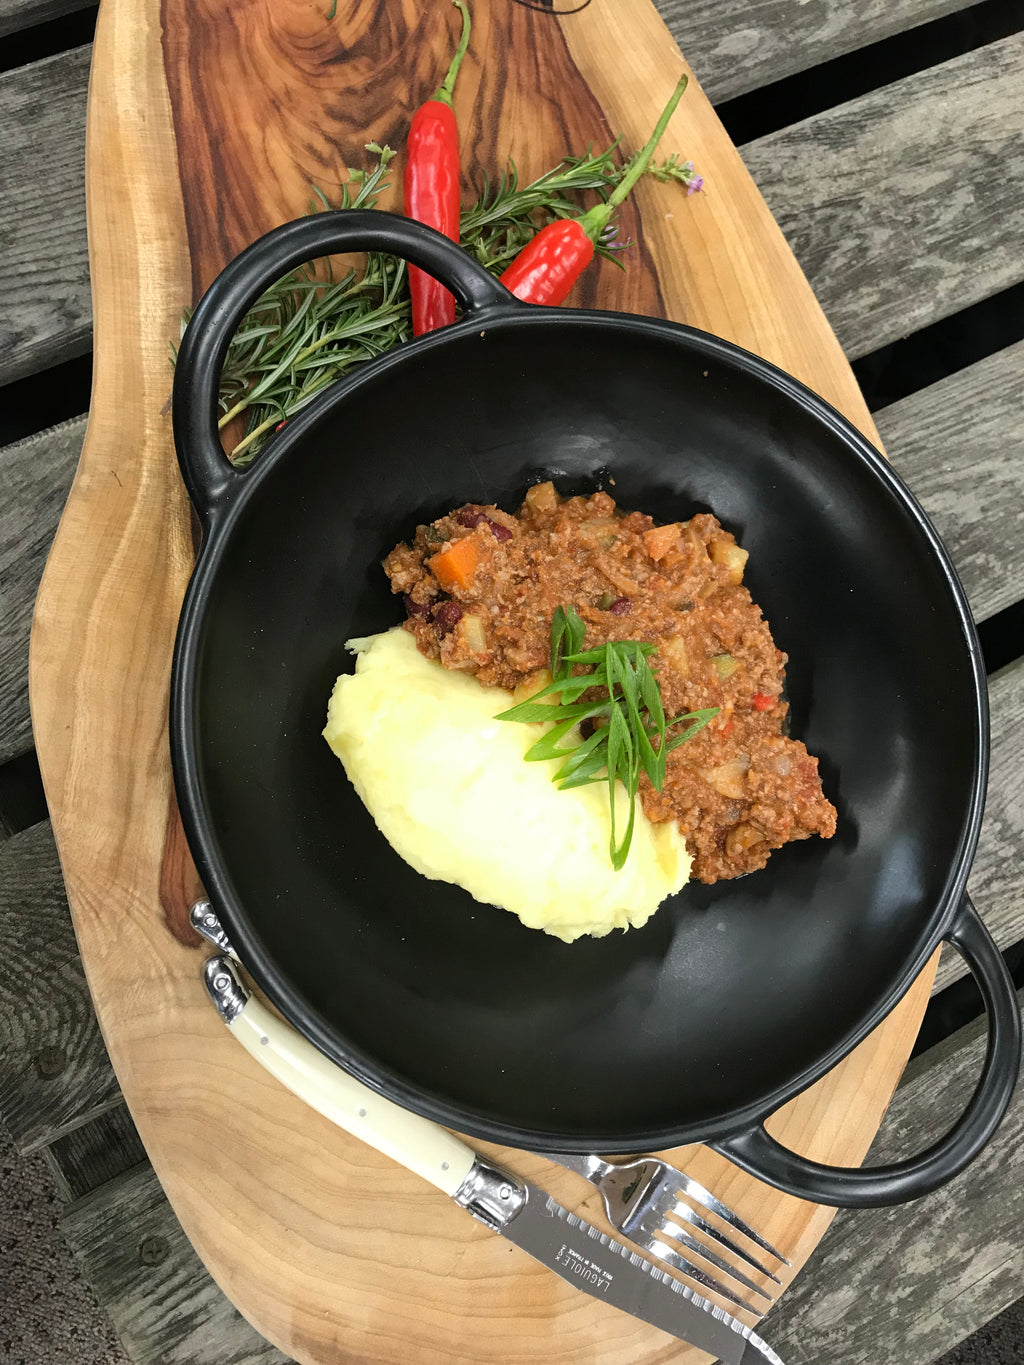 Chili Con Carne with Mash Potato